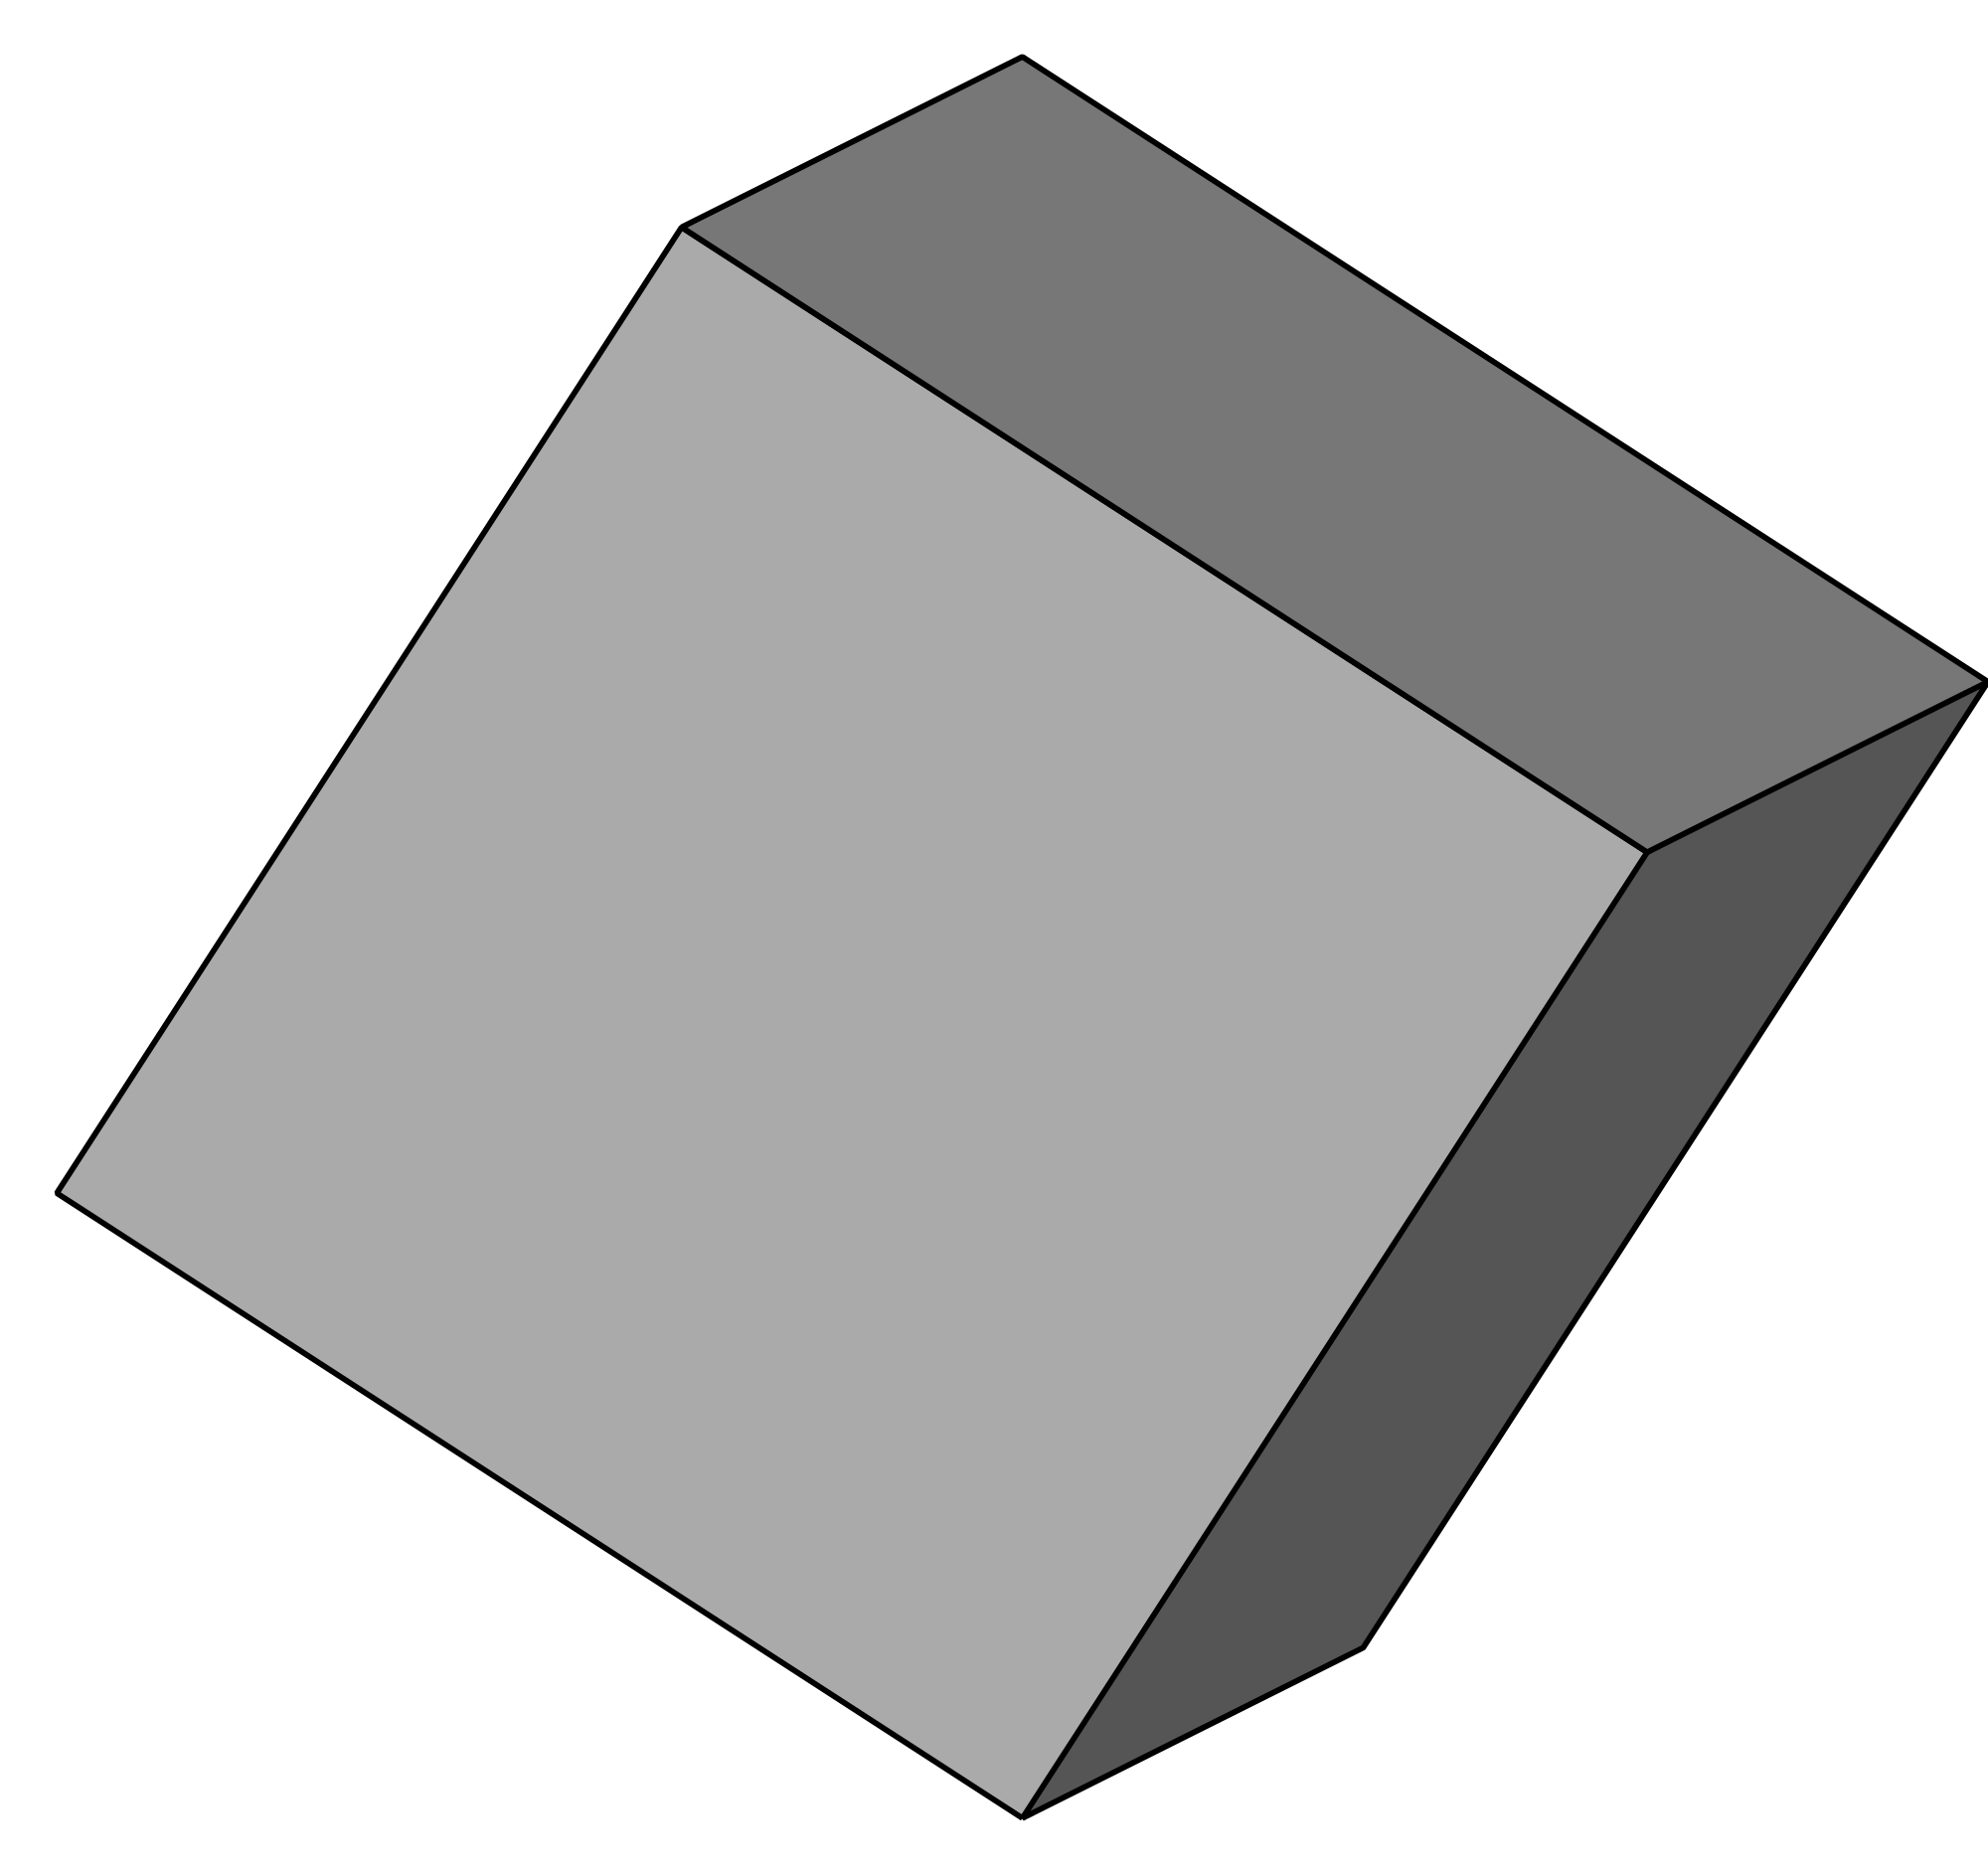 Cube svg #3, Download drawings